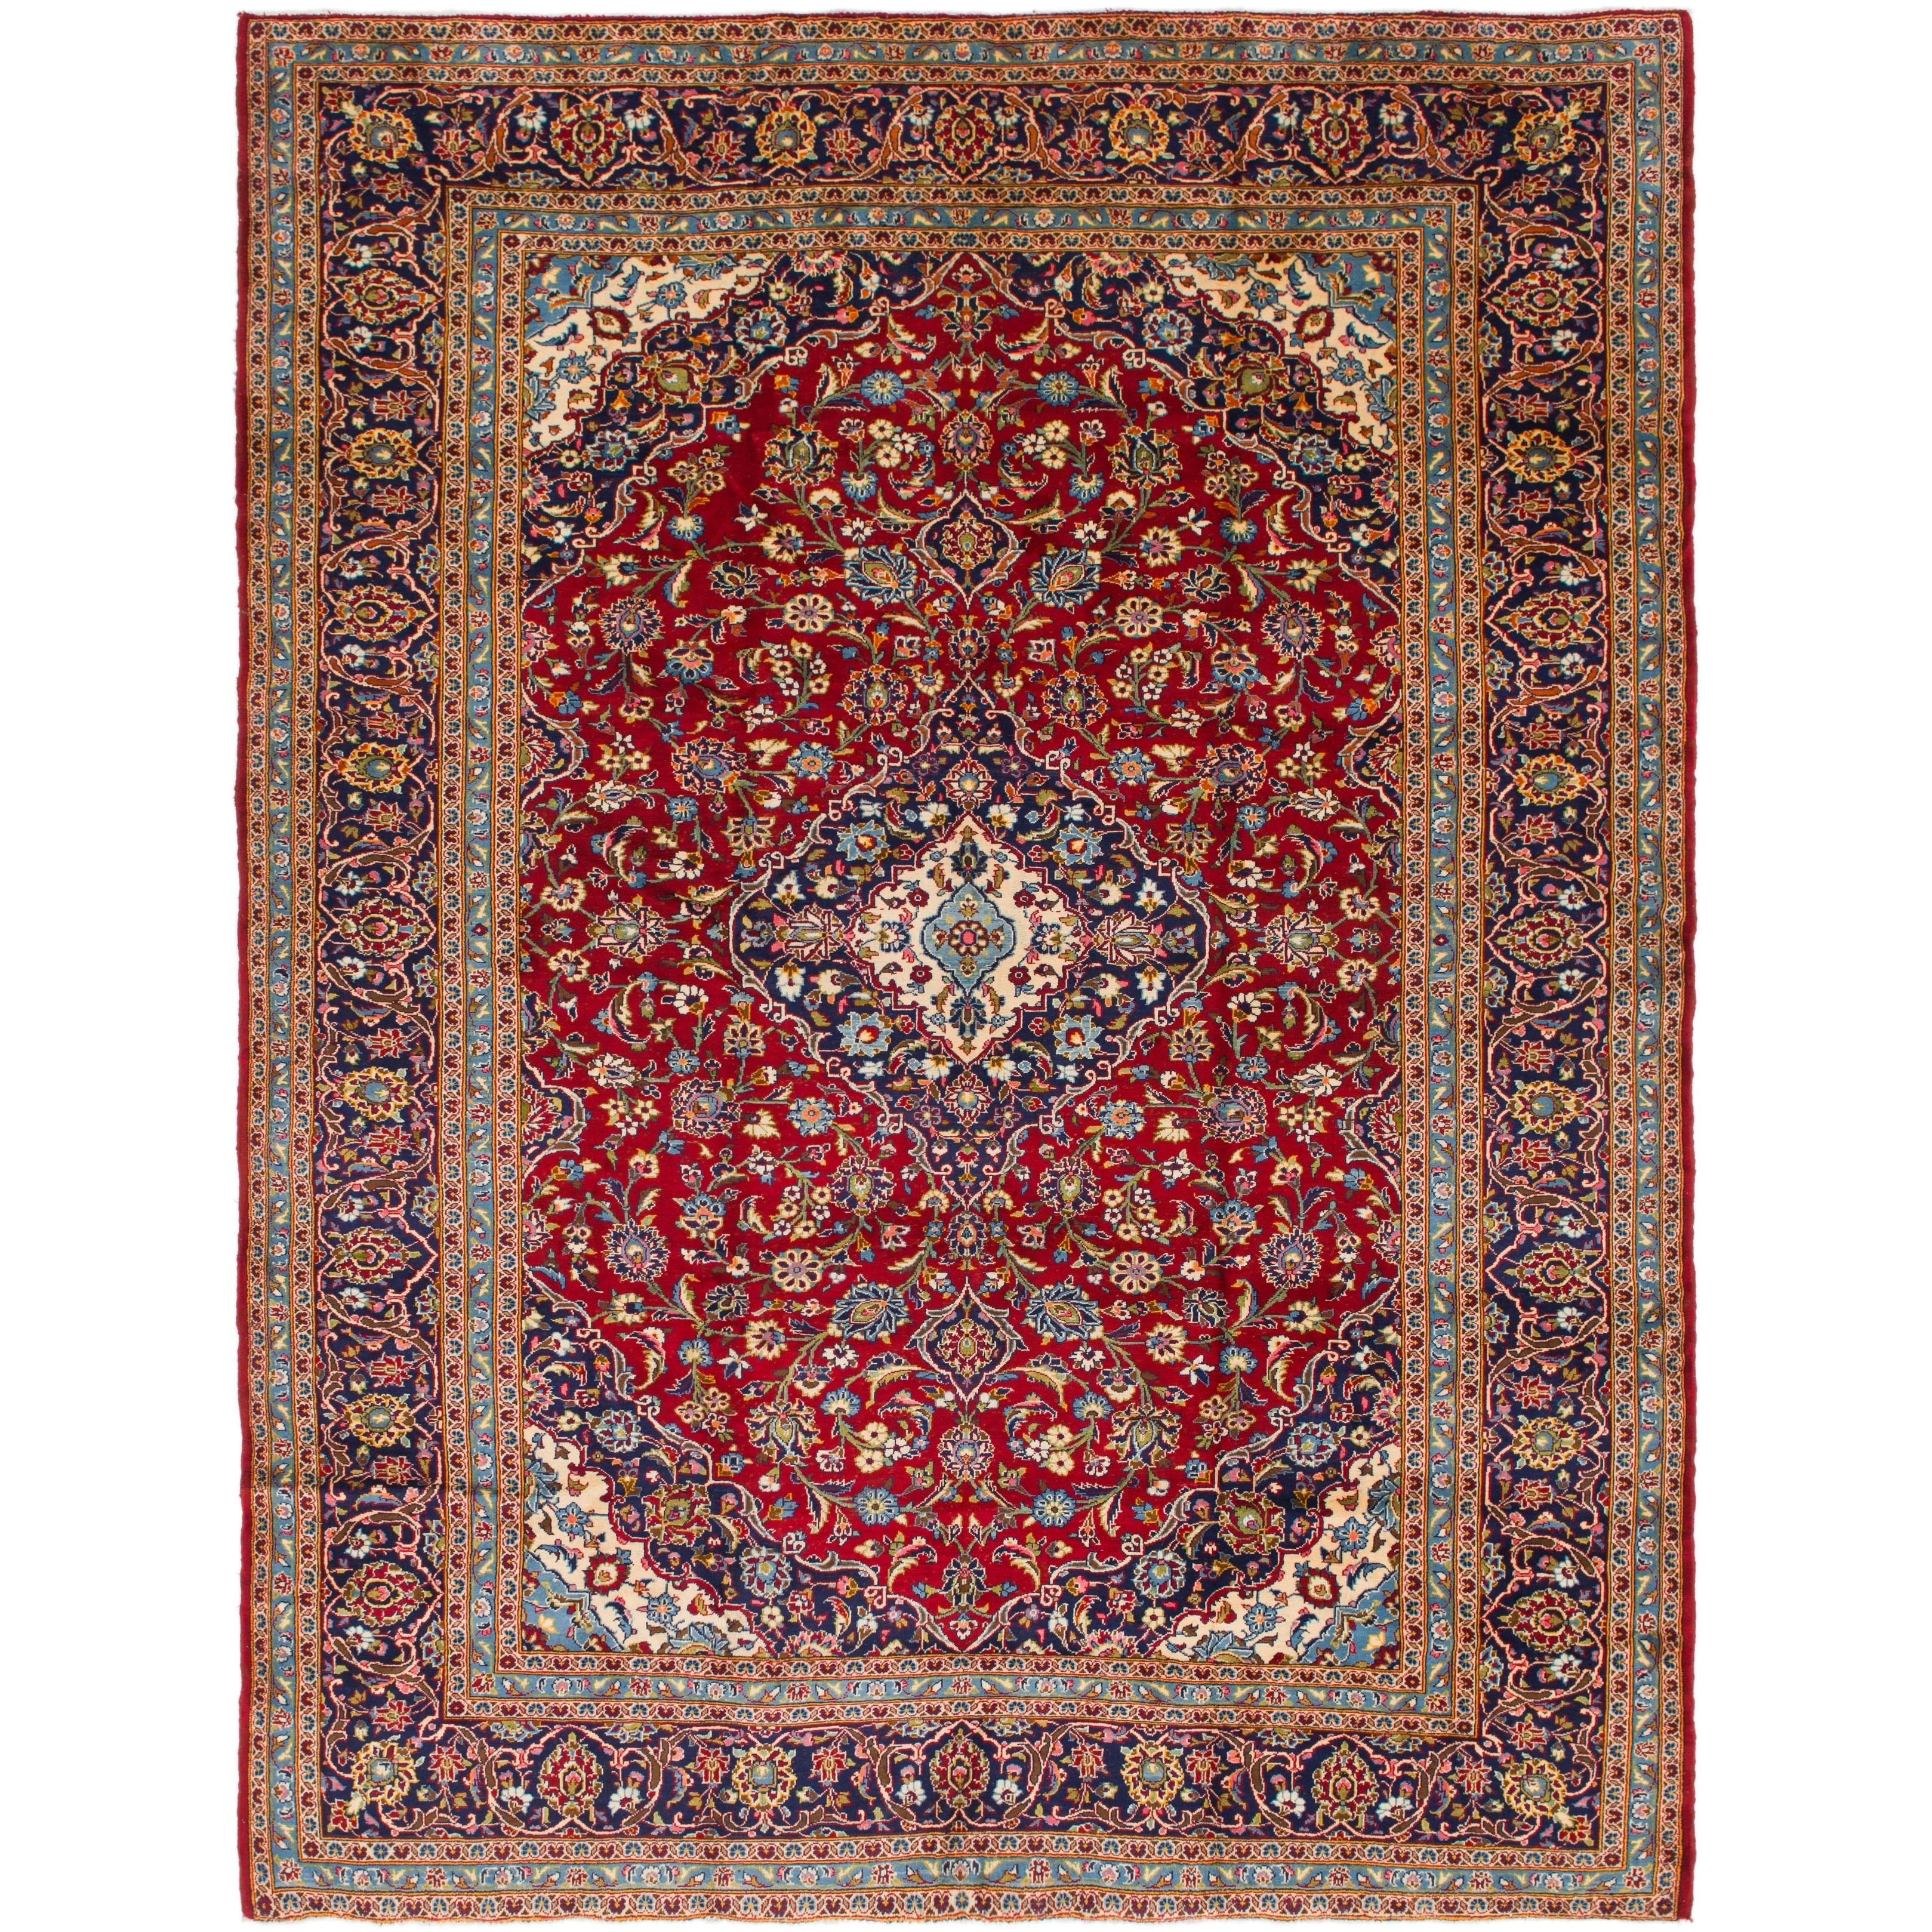 Hand Knotted Kashan Semi Antique Wool Area Rug - 9 5 x 12 6 (Red - 9 5 x 12 6)